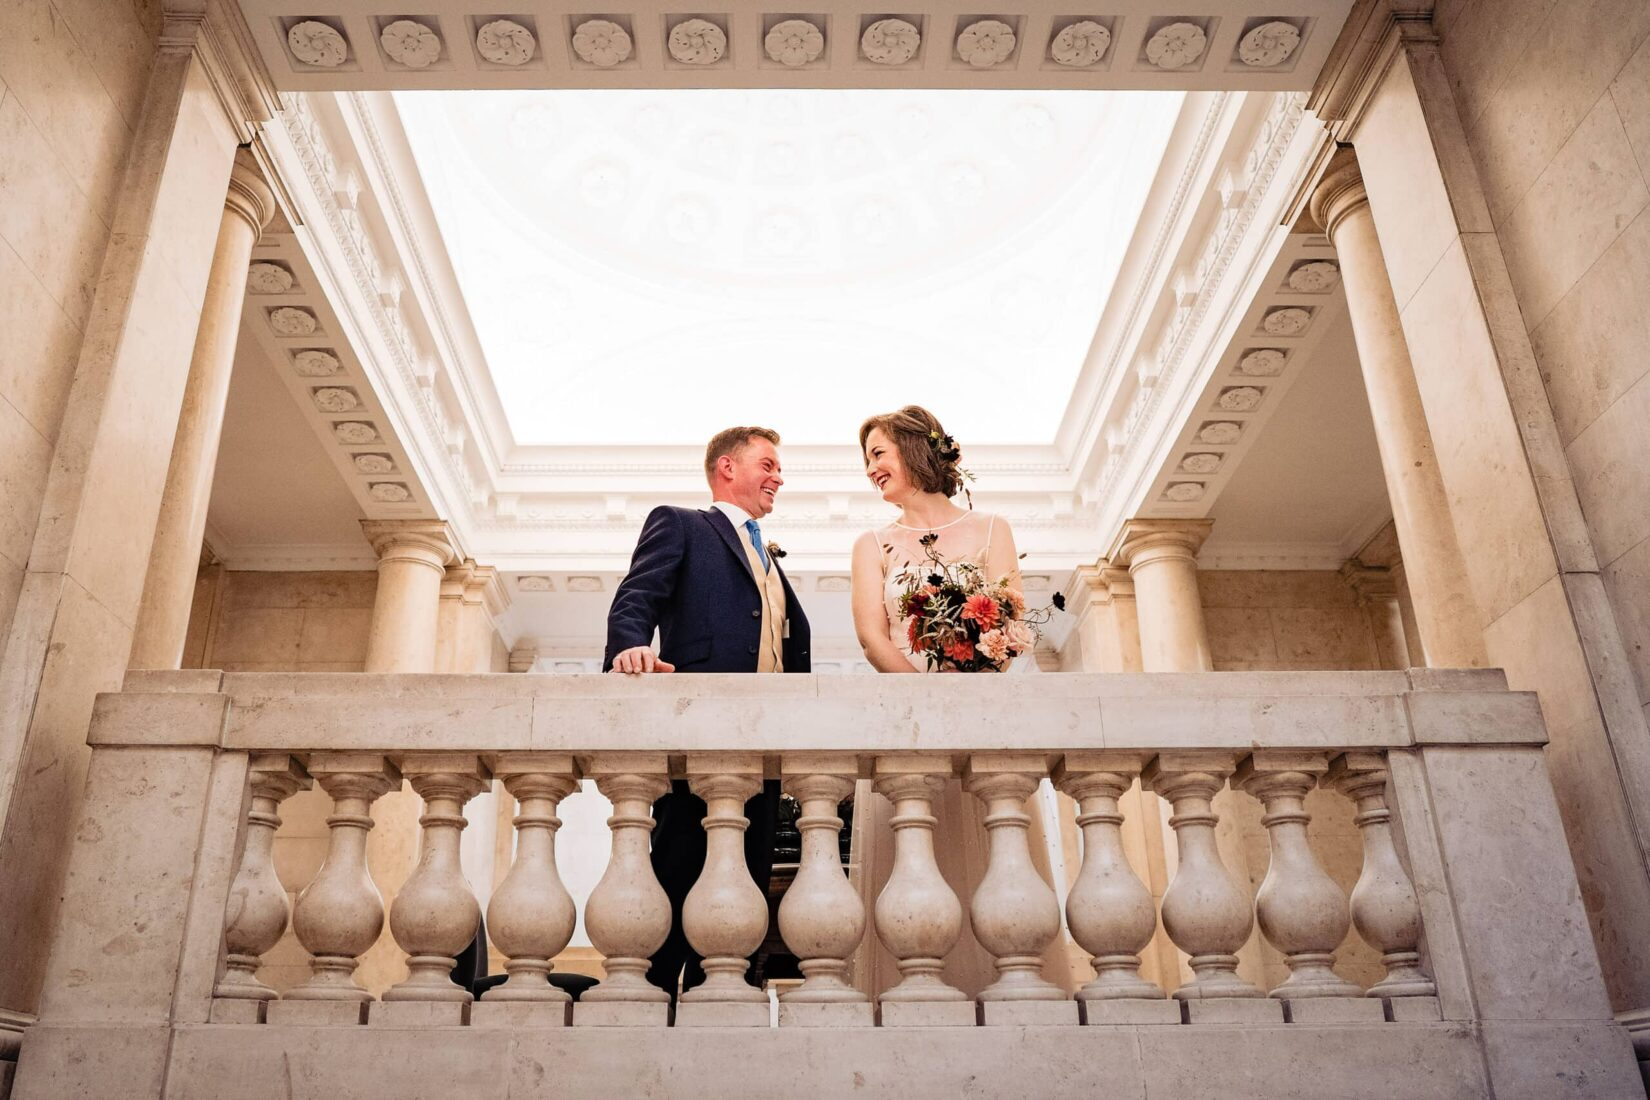 Bride and groom smile at each other at their Old Marylebone Town Hall Wedding ceremony